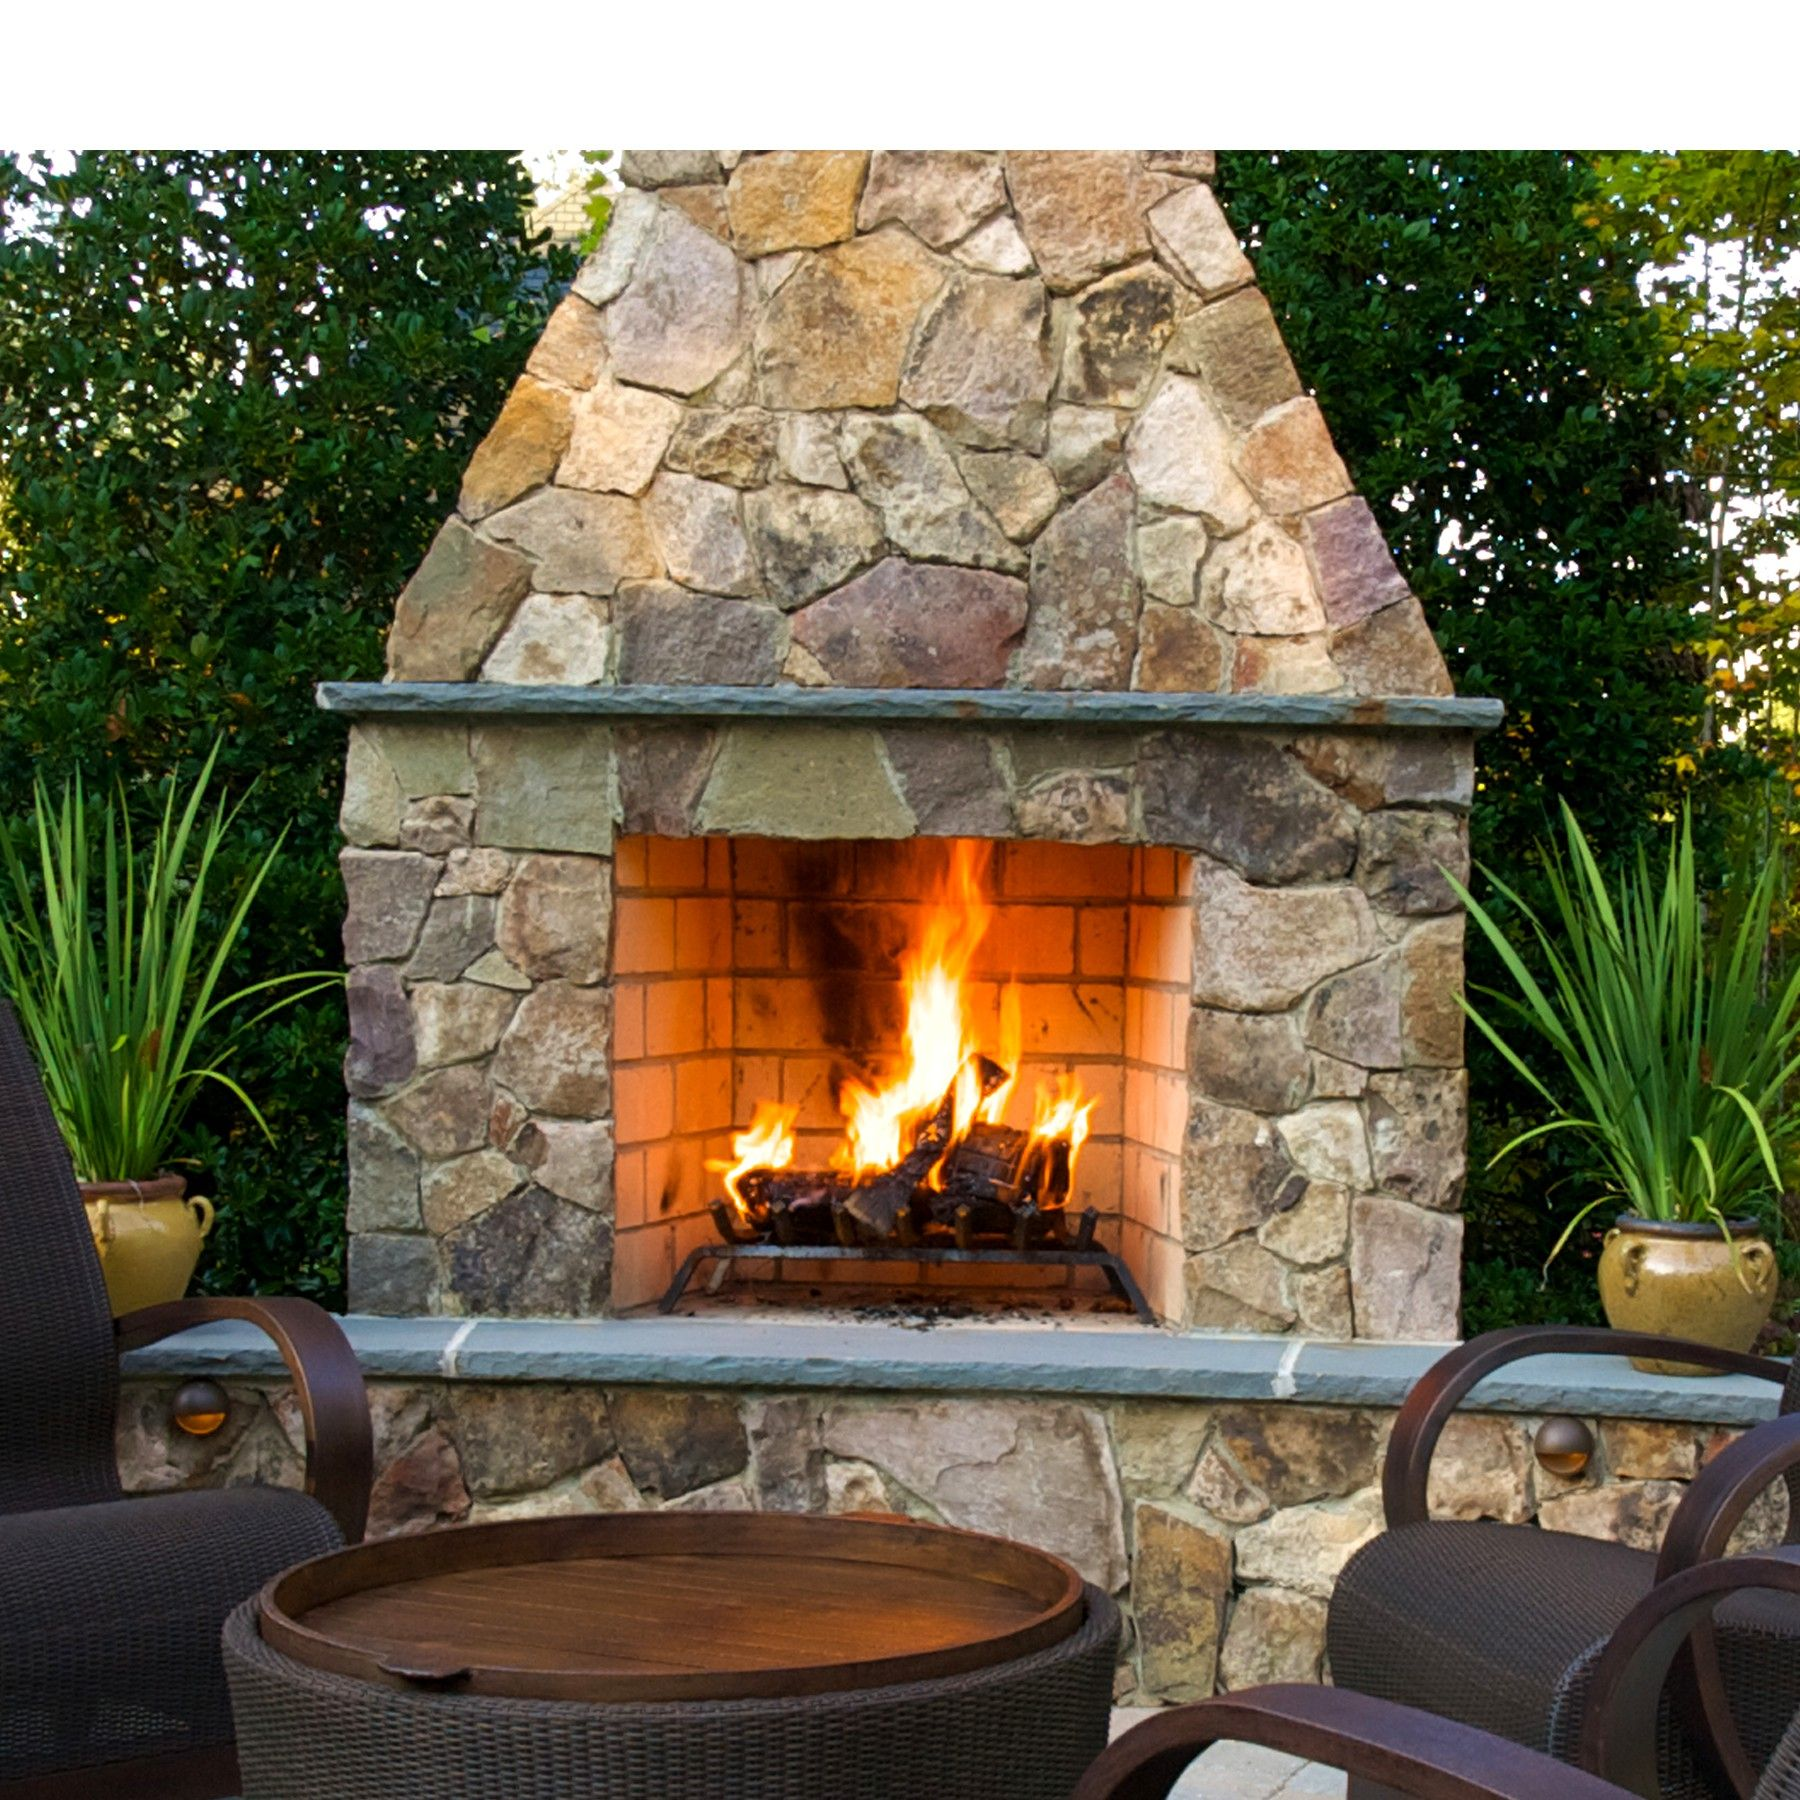 Fire Pit Hood Chimney Lovely 100 Outdoor Fire Pit Chimney Hood